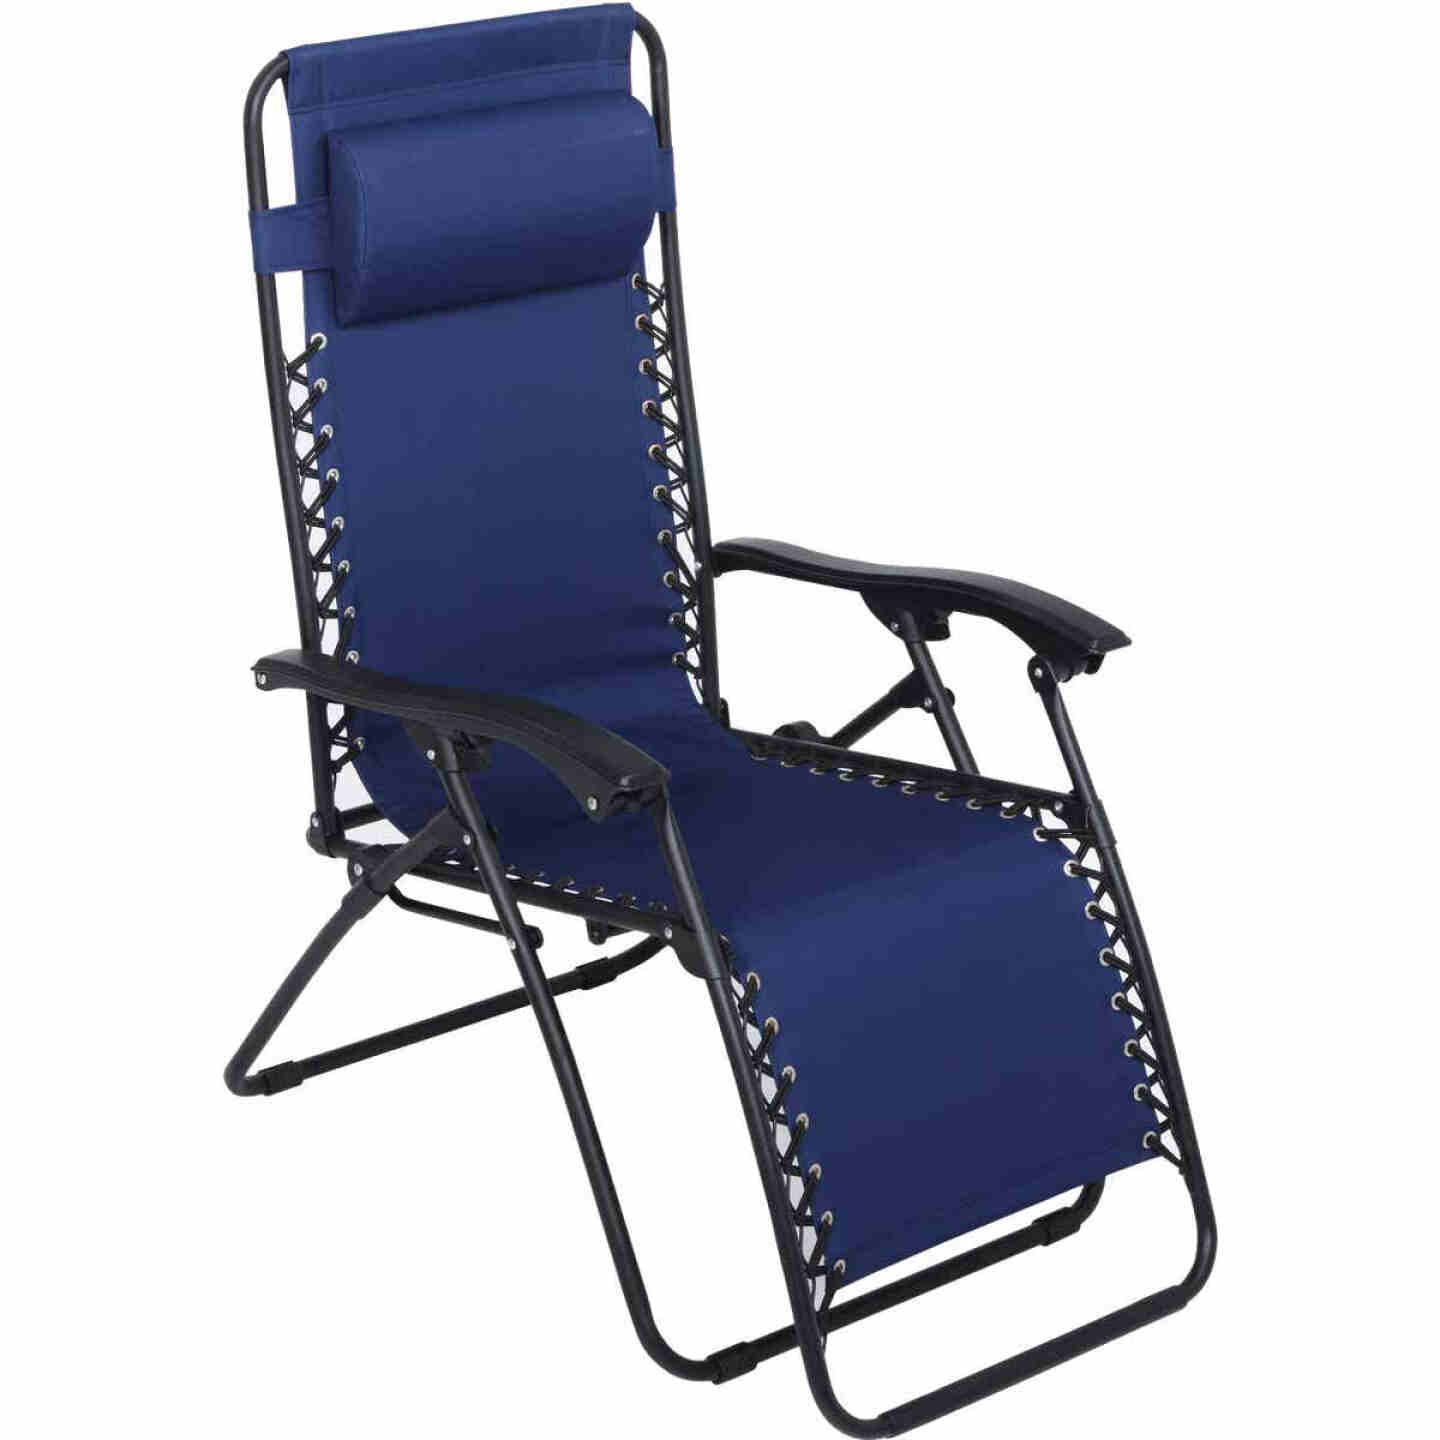 Outdoor Expressions Zero Gravity Relaxer Blue Convertible Lounge Chair Image 5